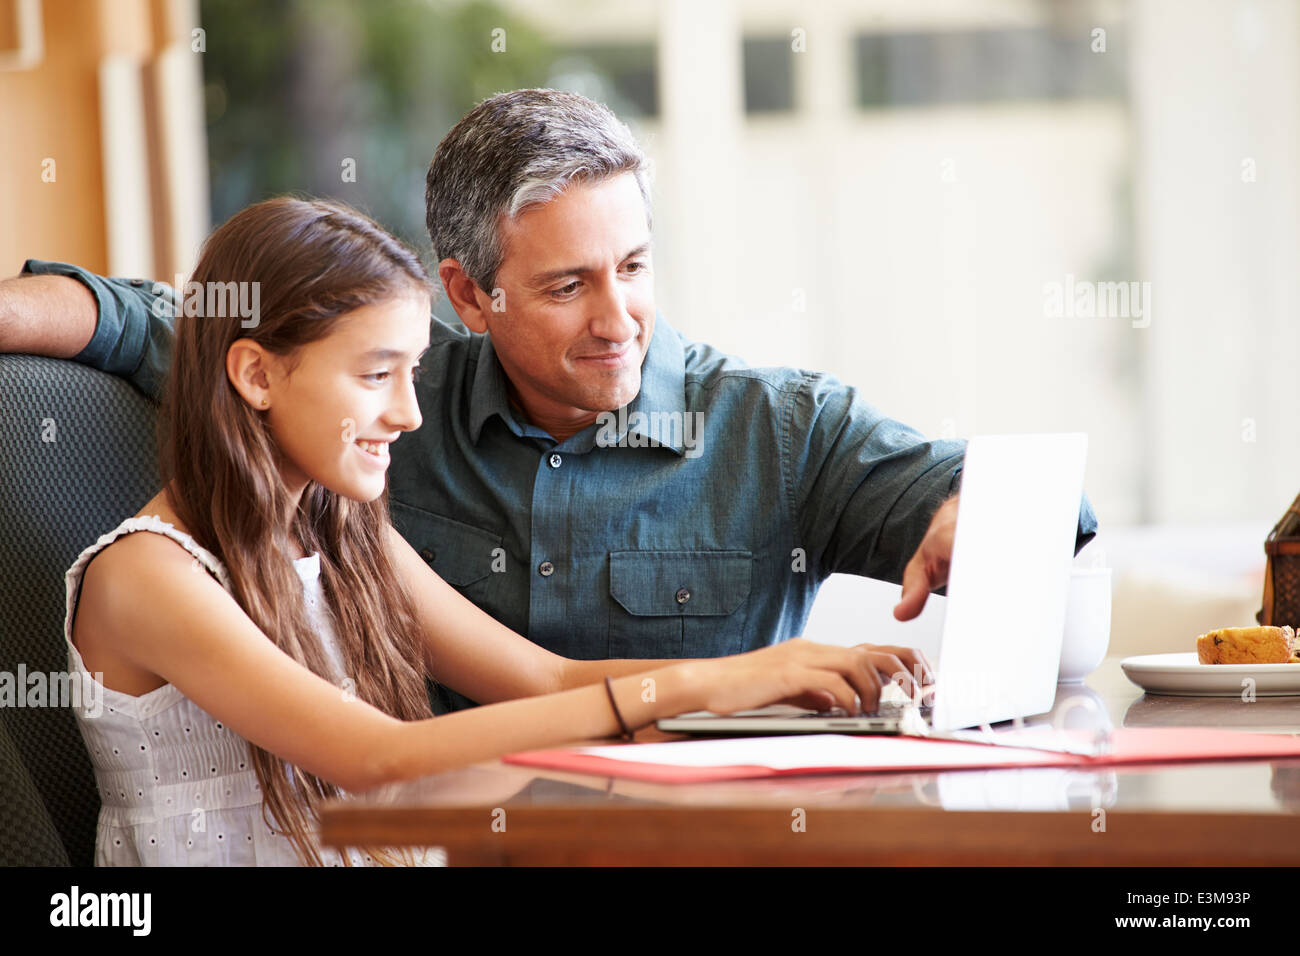 Father And Teenage Daughter Looking At Laptop Together - Stock Image